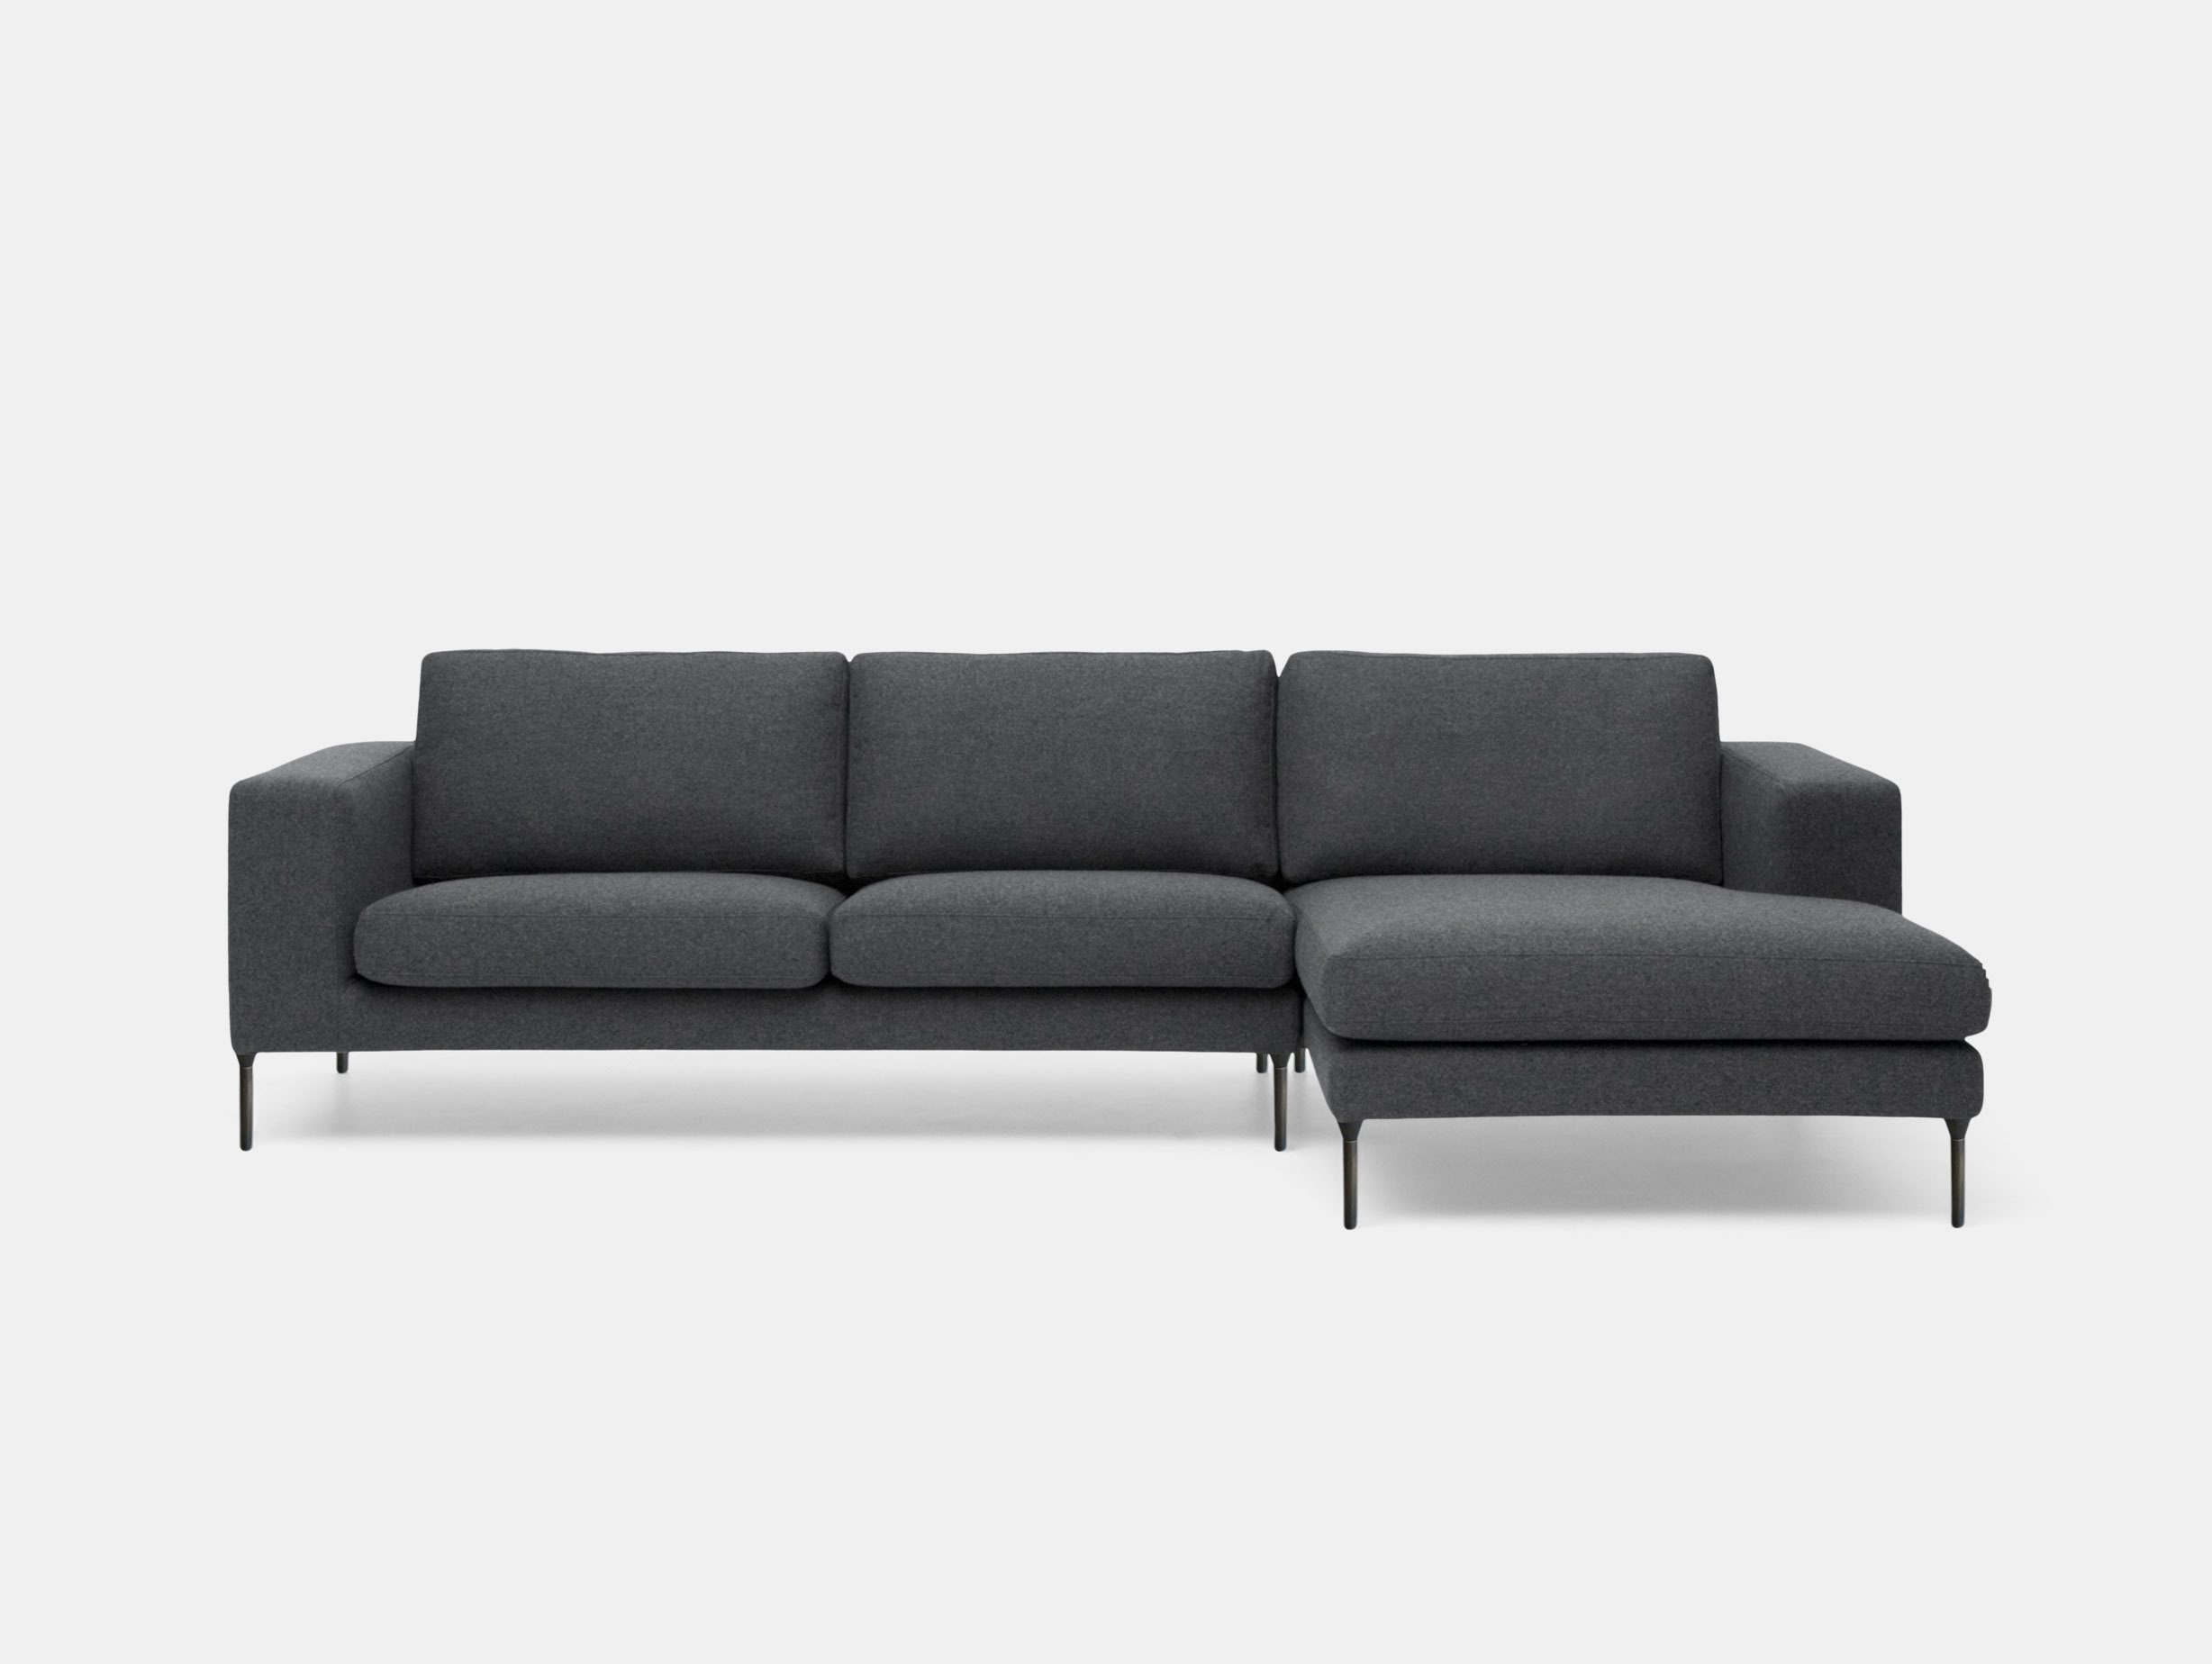 Fabulous Neo Sectional Sofa Alphanode Cool Chair Designs And Ideas Alphanodeonline